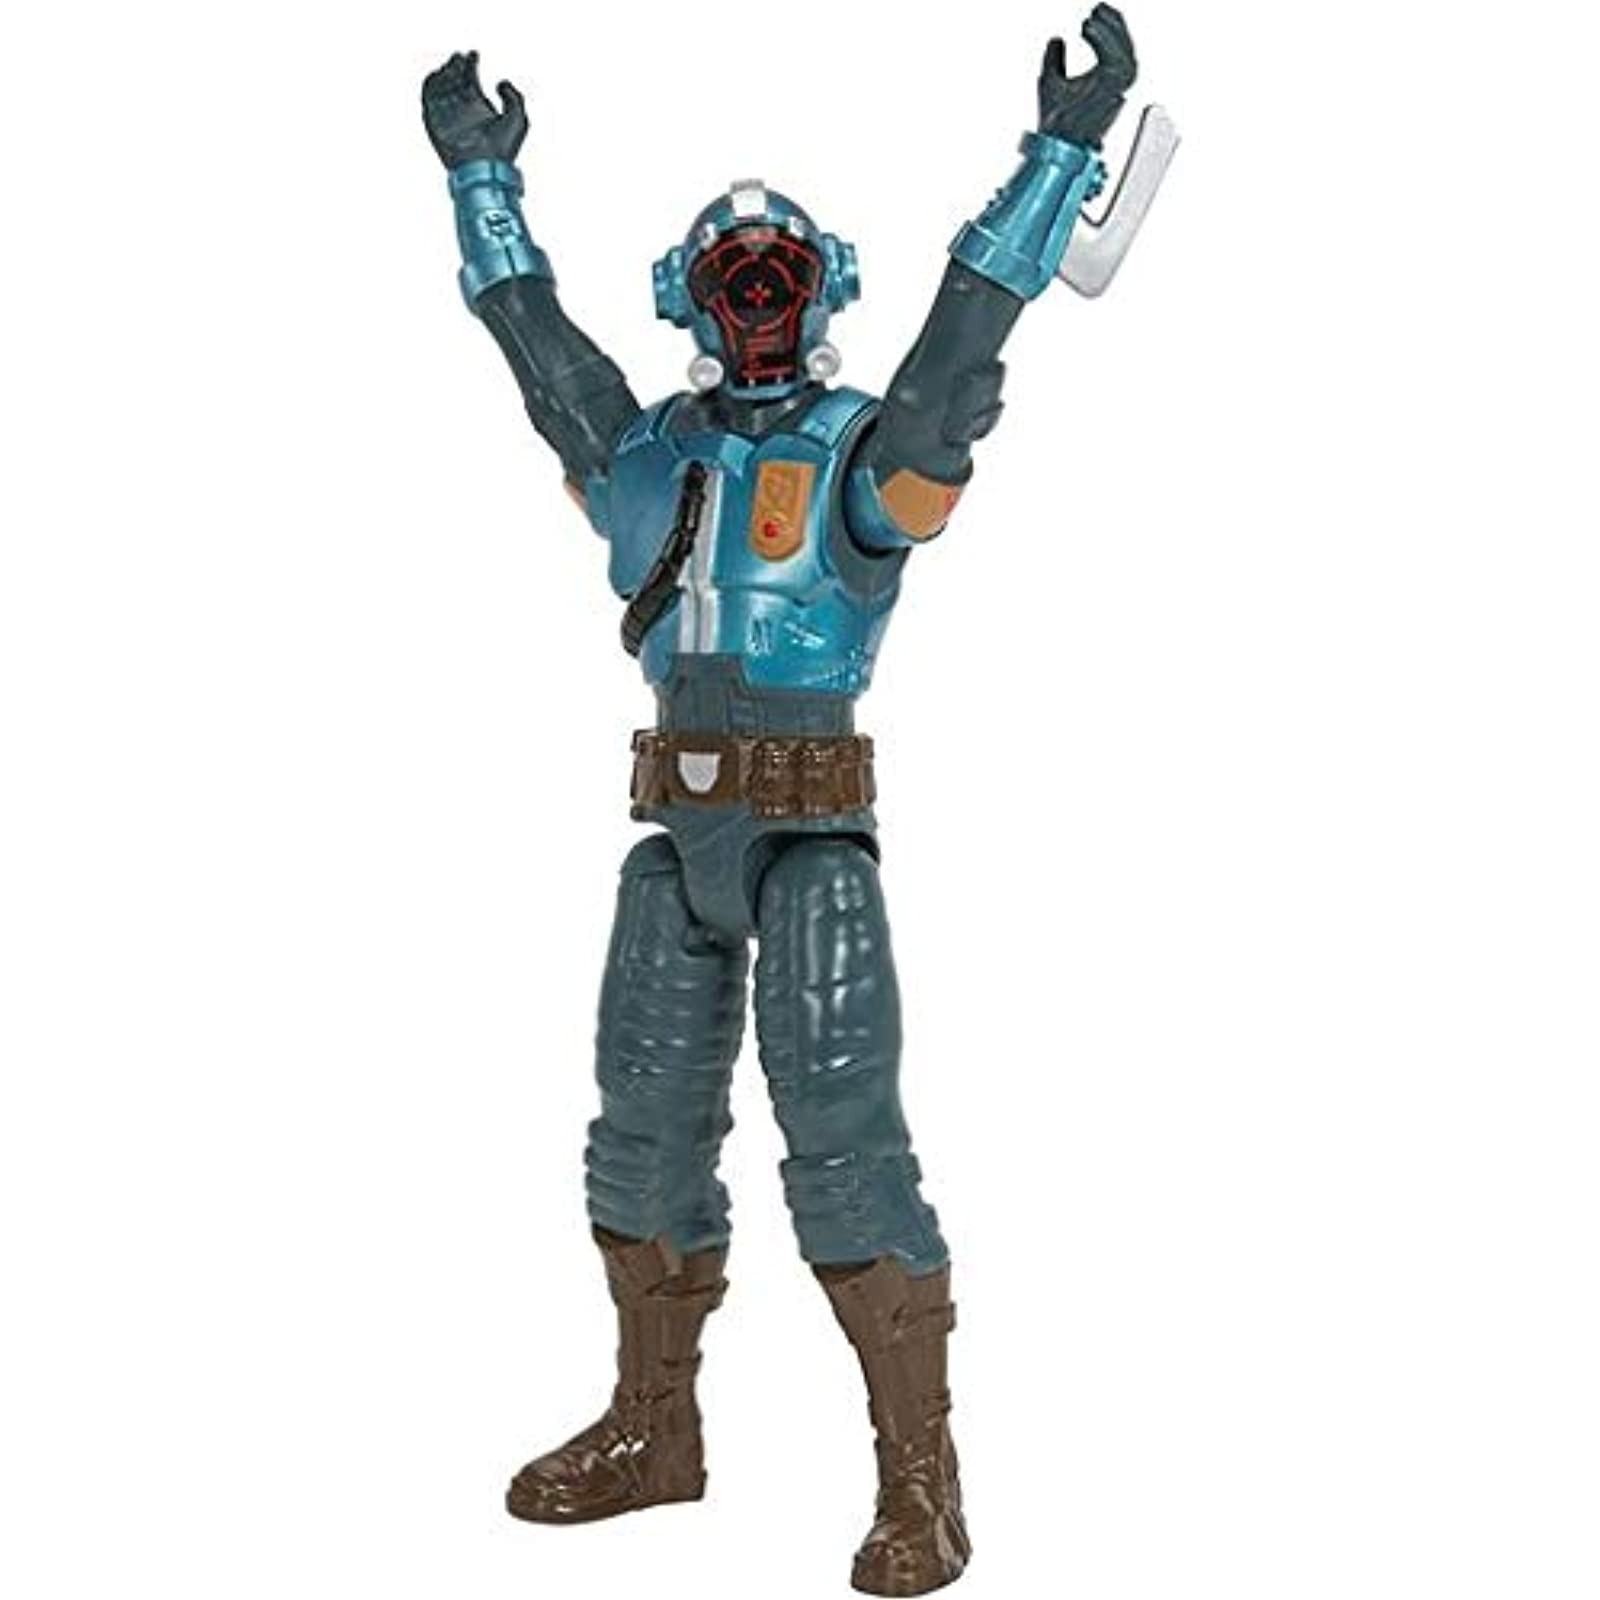 Fortnite FNT0149 Action Figure Toy UCH434